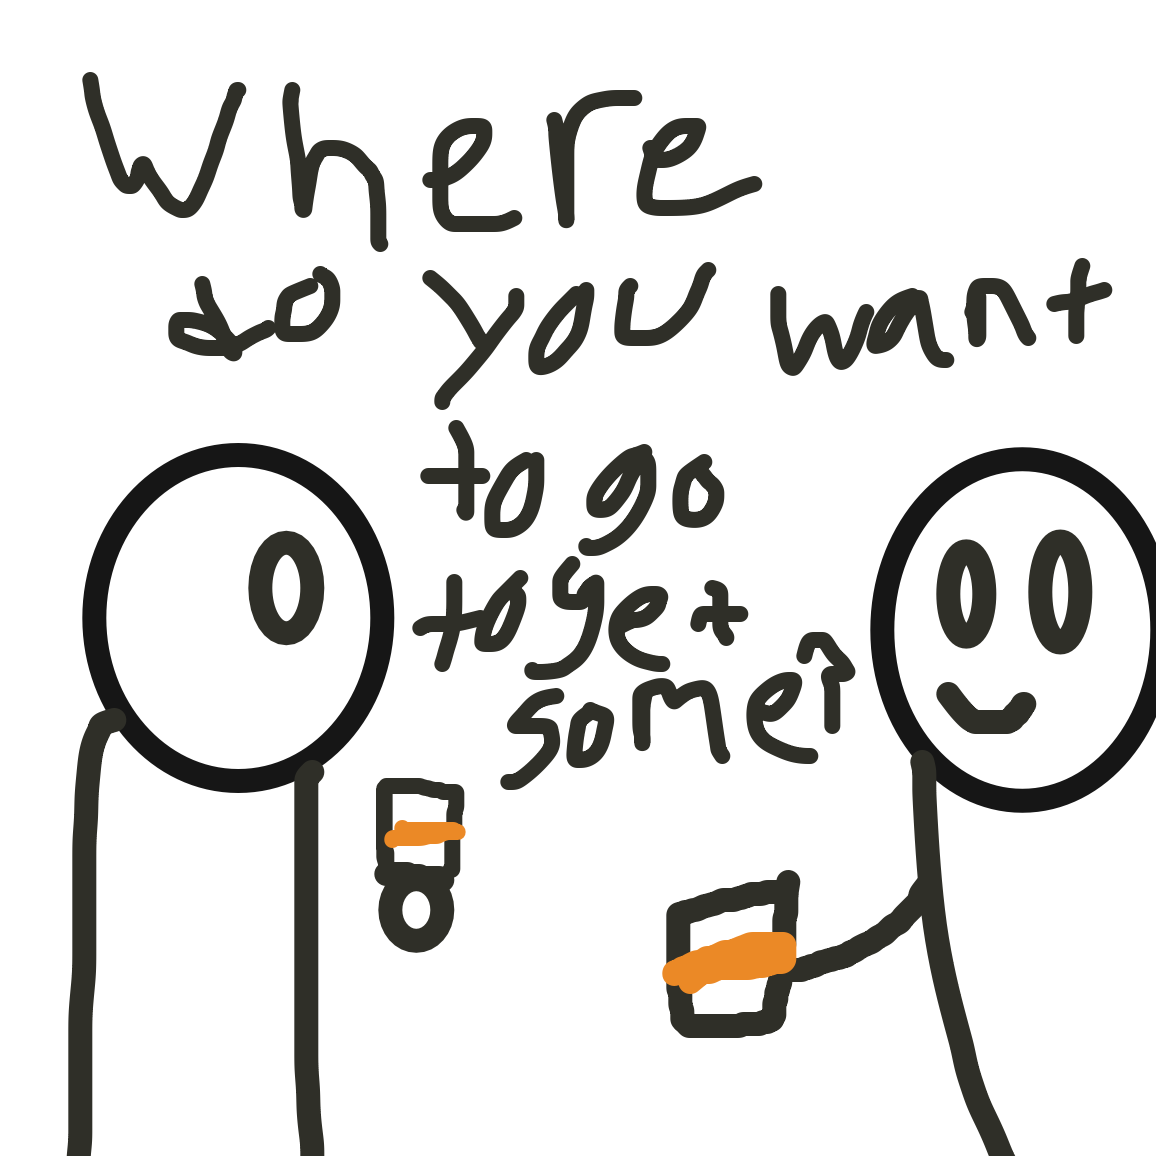 Drawing in Who wants to go out for coffe? by Jack